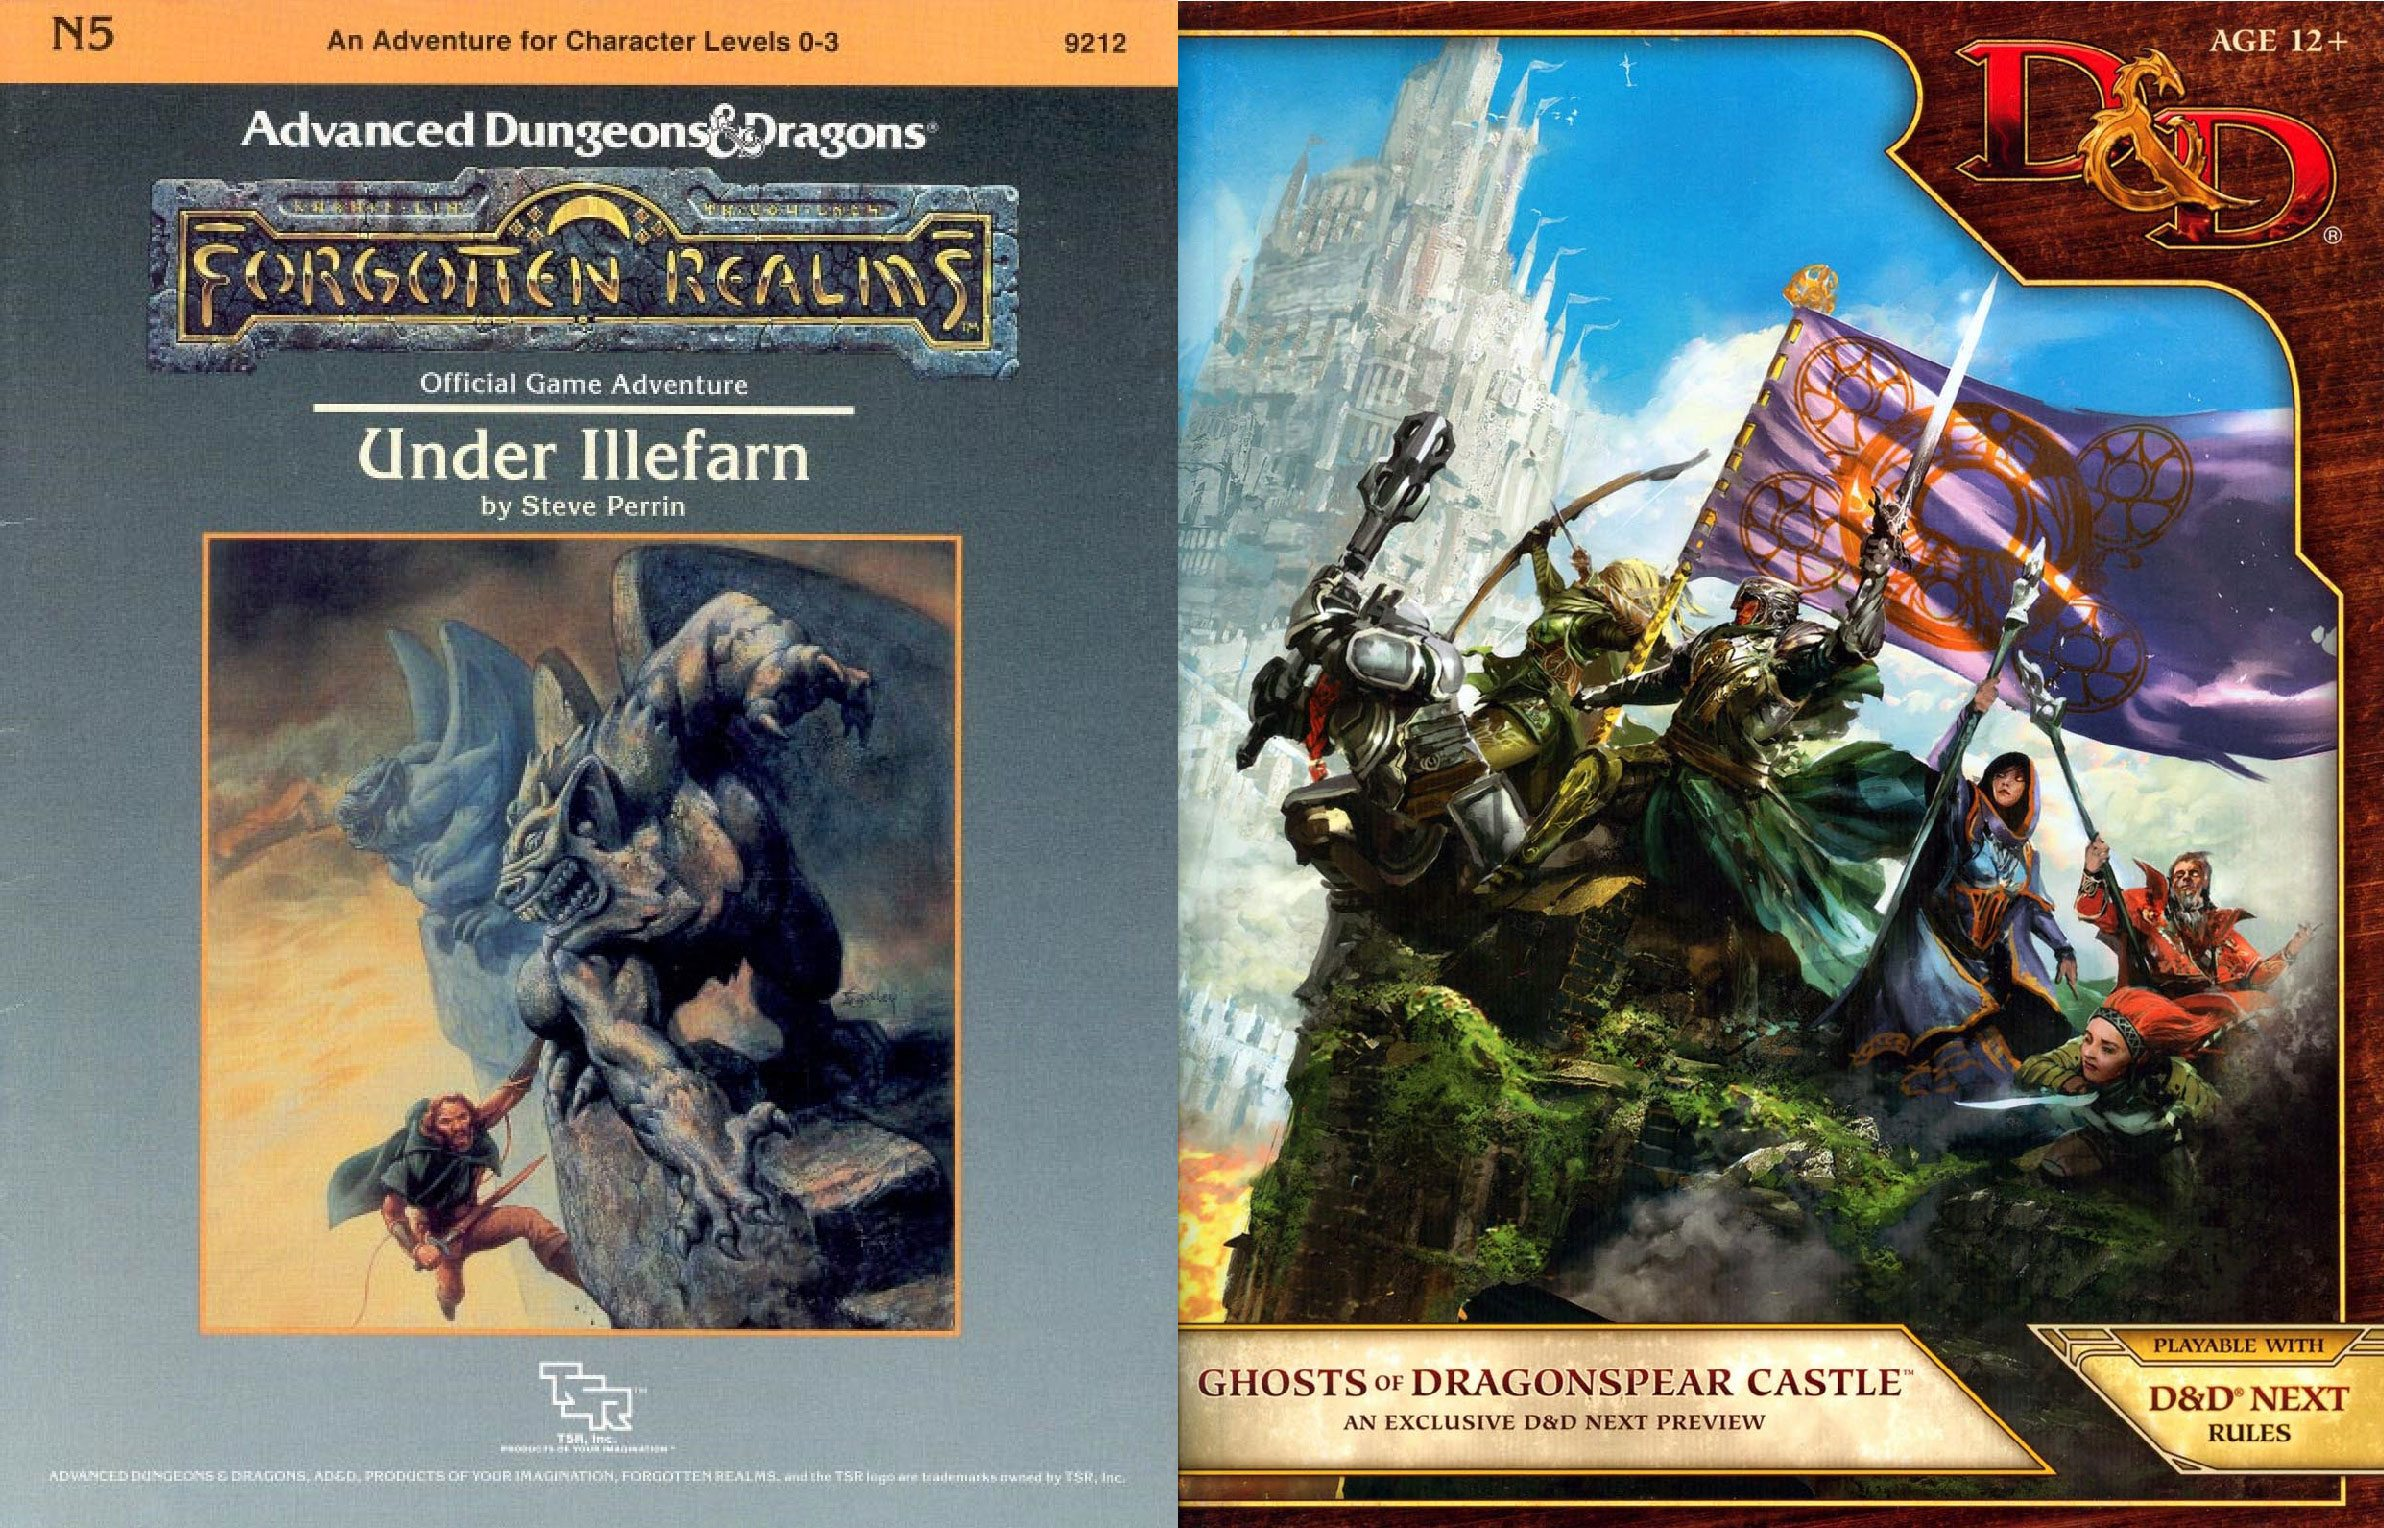 From 1E Under Illefarn to 5E Ghosts of Dragonspear Castle and Beyond